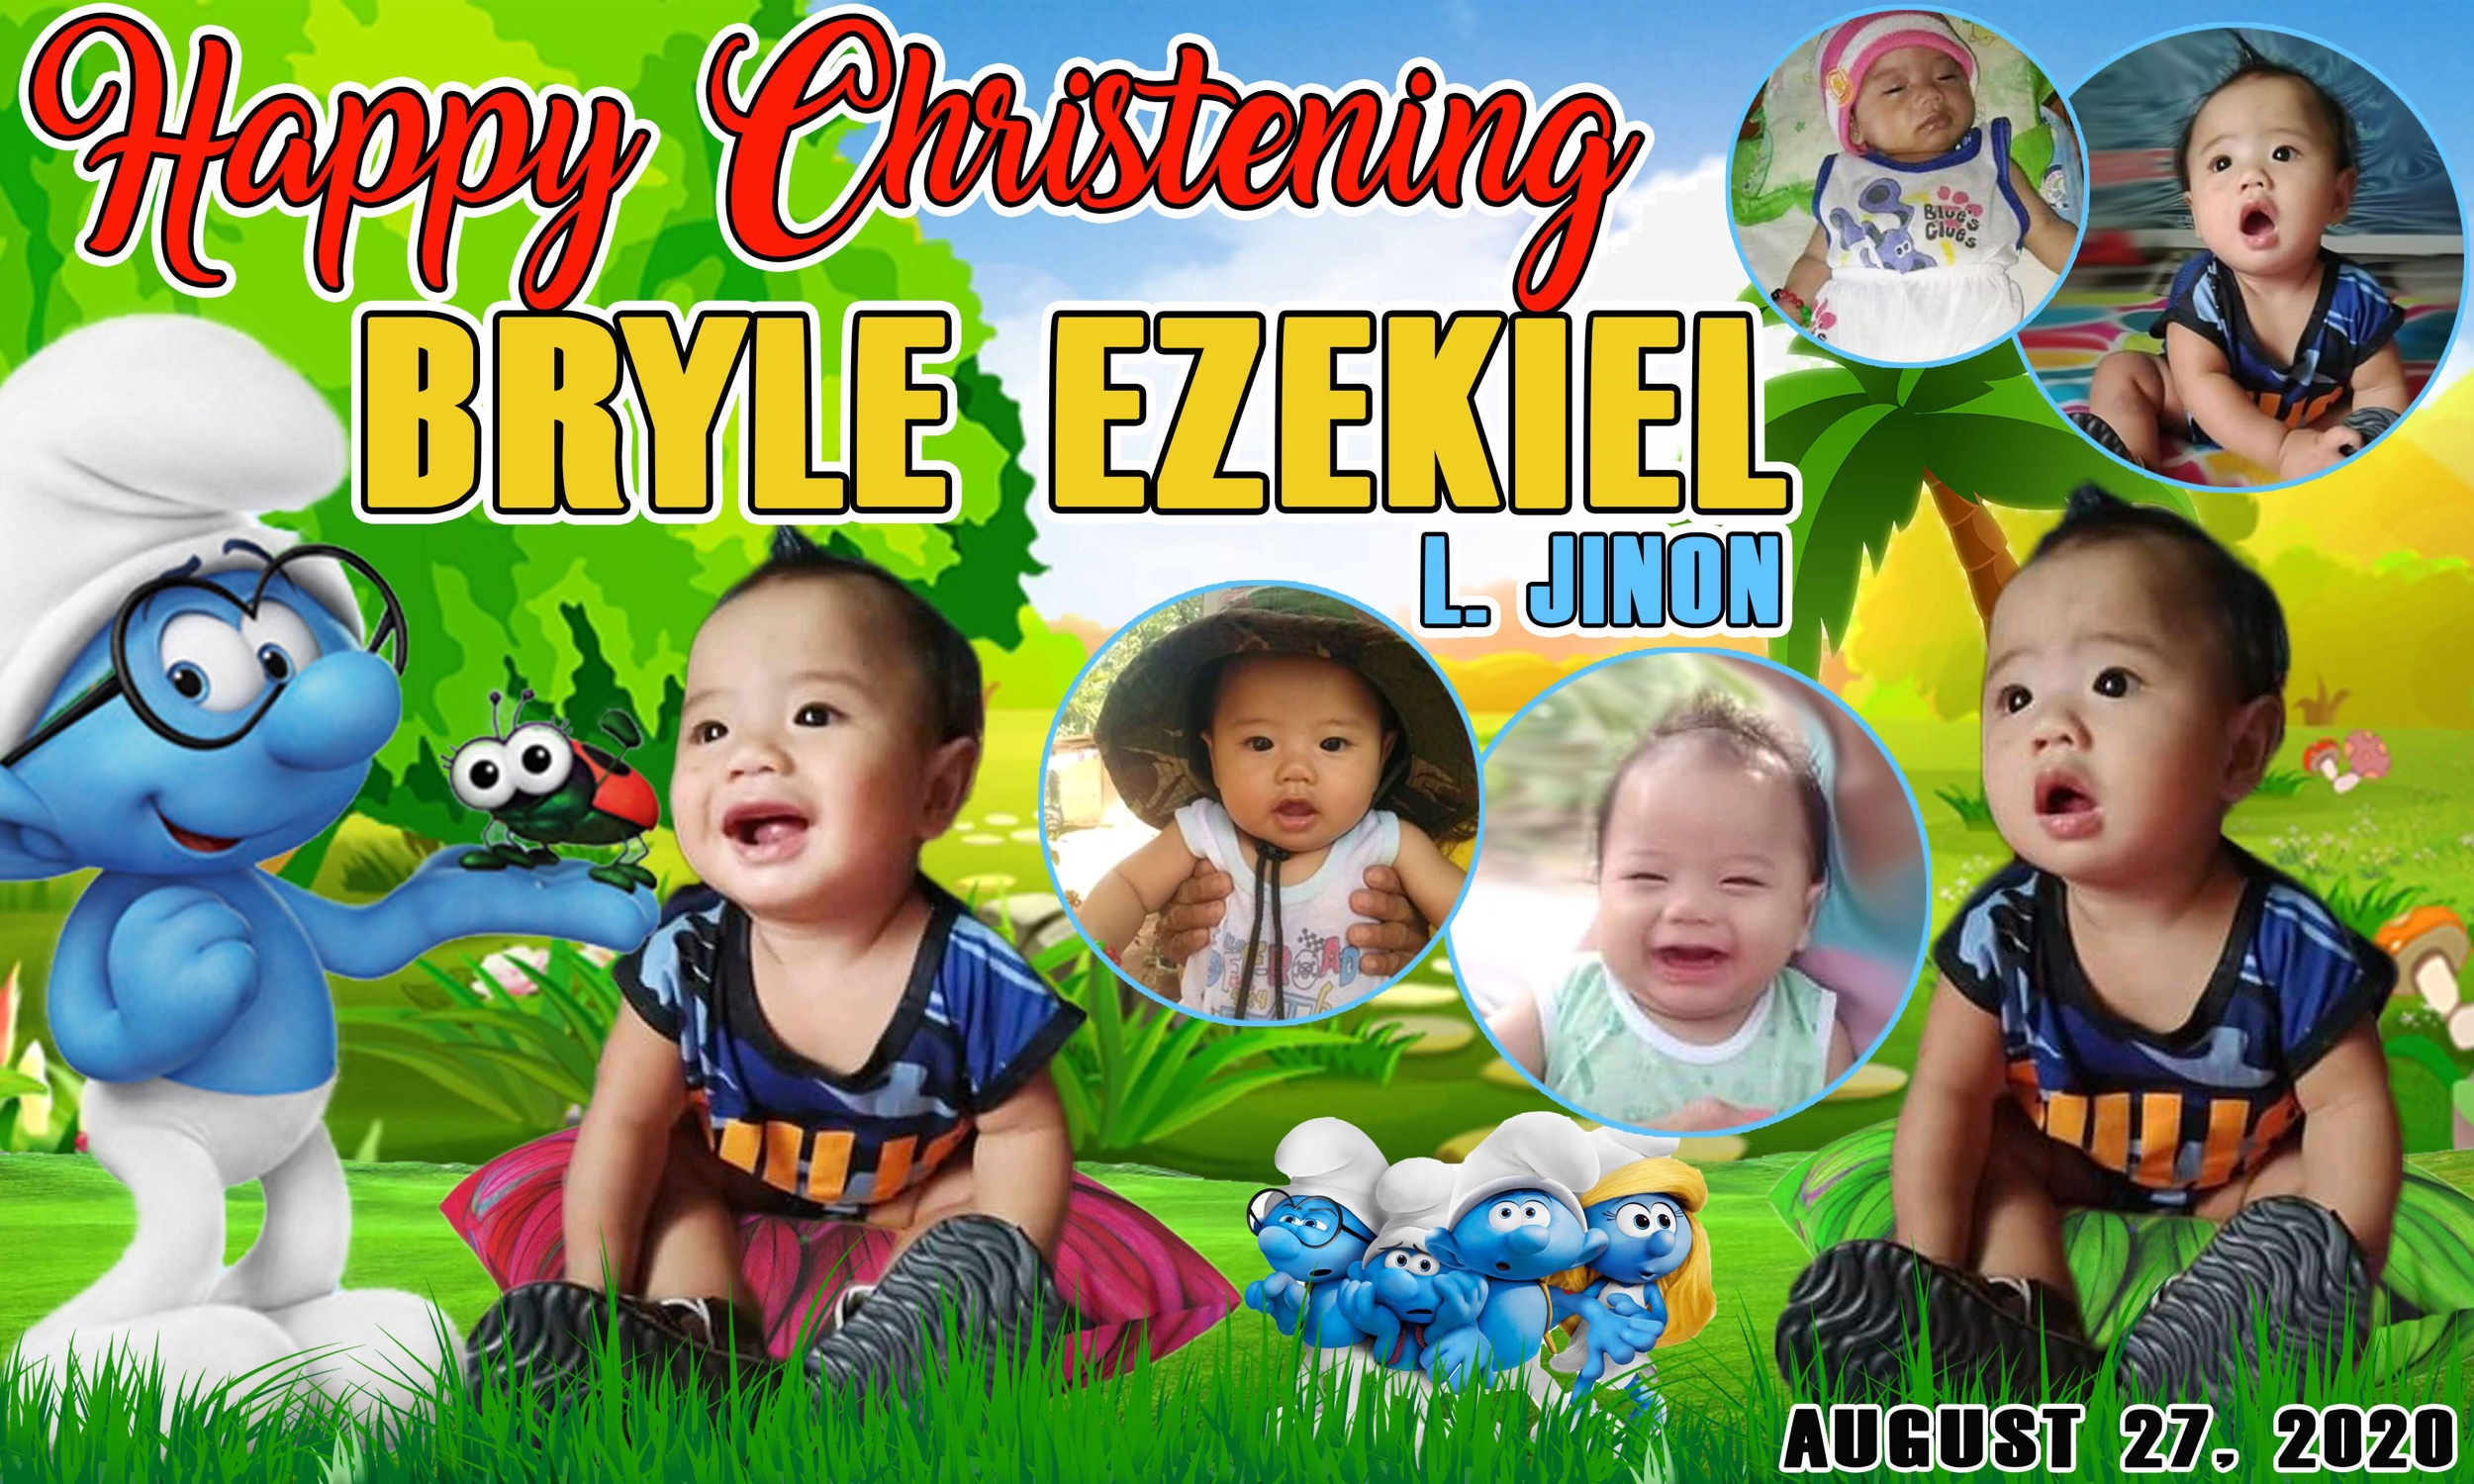 The Smurf Theme Christening Tarpaulin Design